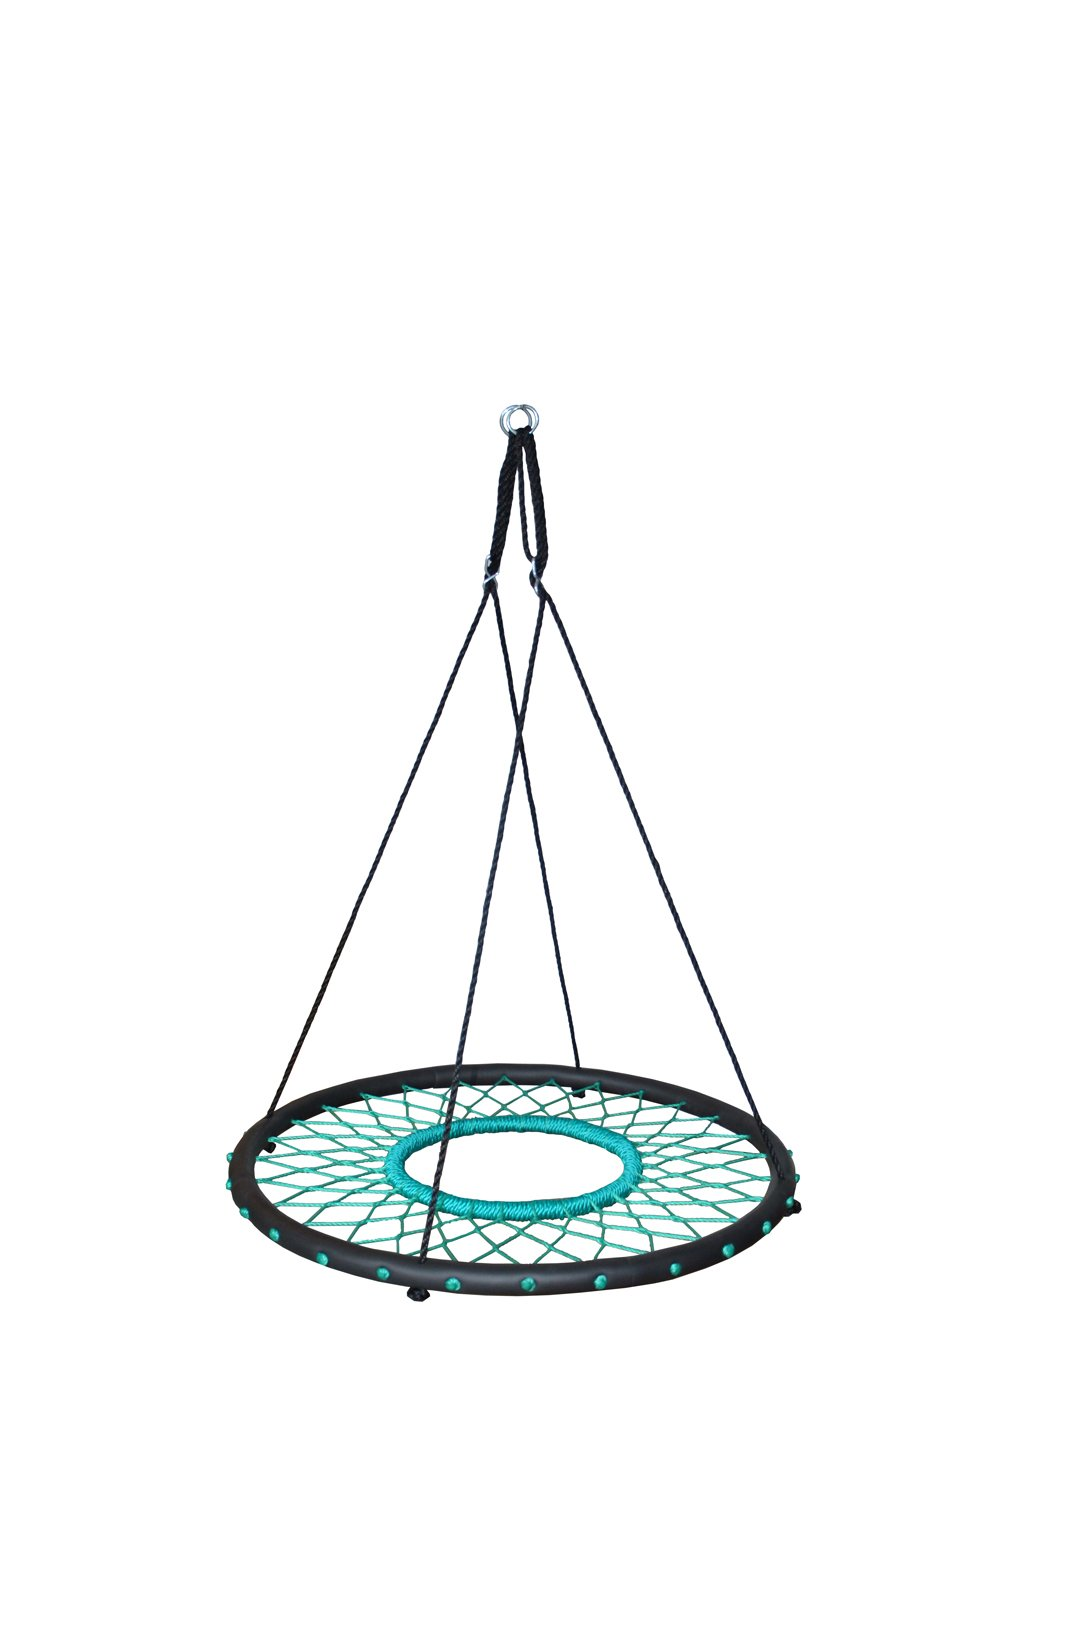 Swinging Monkey Products Tarzan Tire 40'' Spider Web Swing, Green – Tree Swing, Redesigned Tire Swing, Extra Safe and Durable, Swing with Friends, Easy Install for Swing Set or Tree